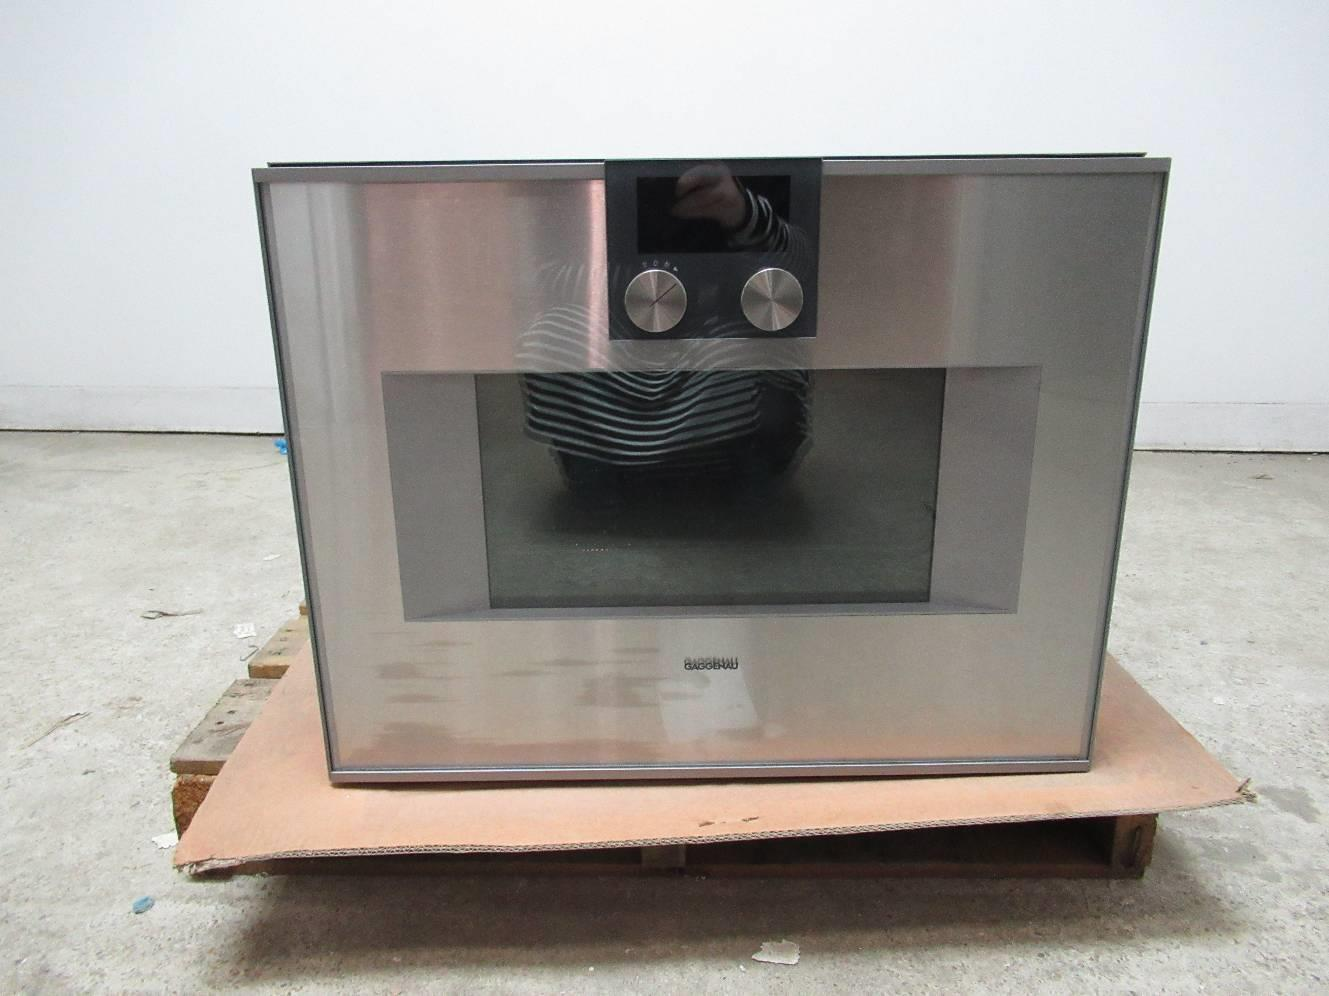 "Gaggenau 400 series 24"" TFT touch display Combi-microwave oven BM450110 - ALSurplus AL"